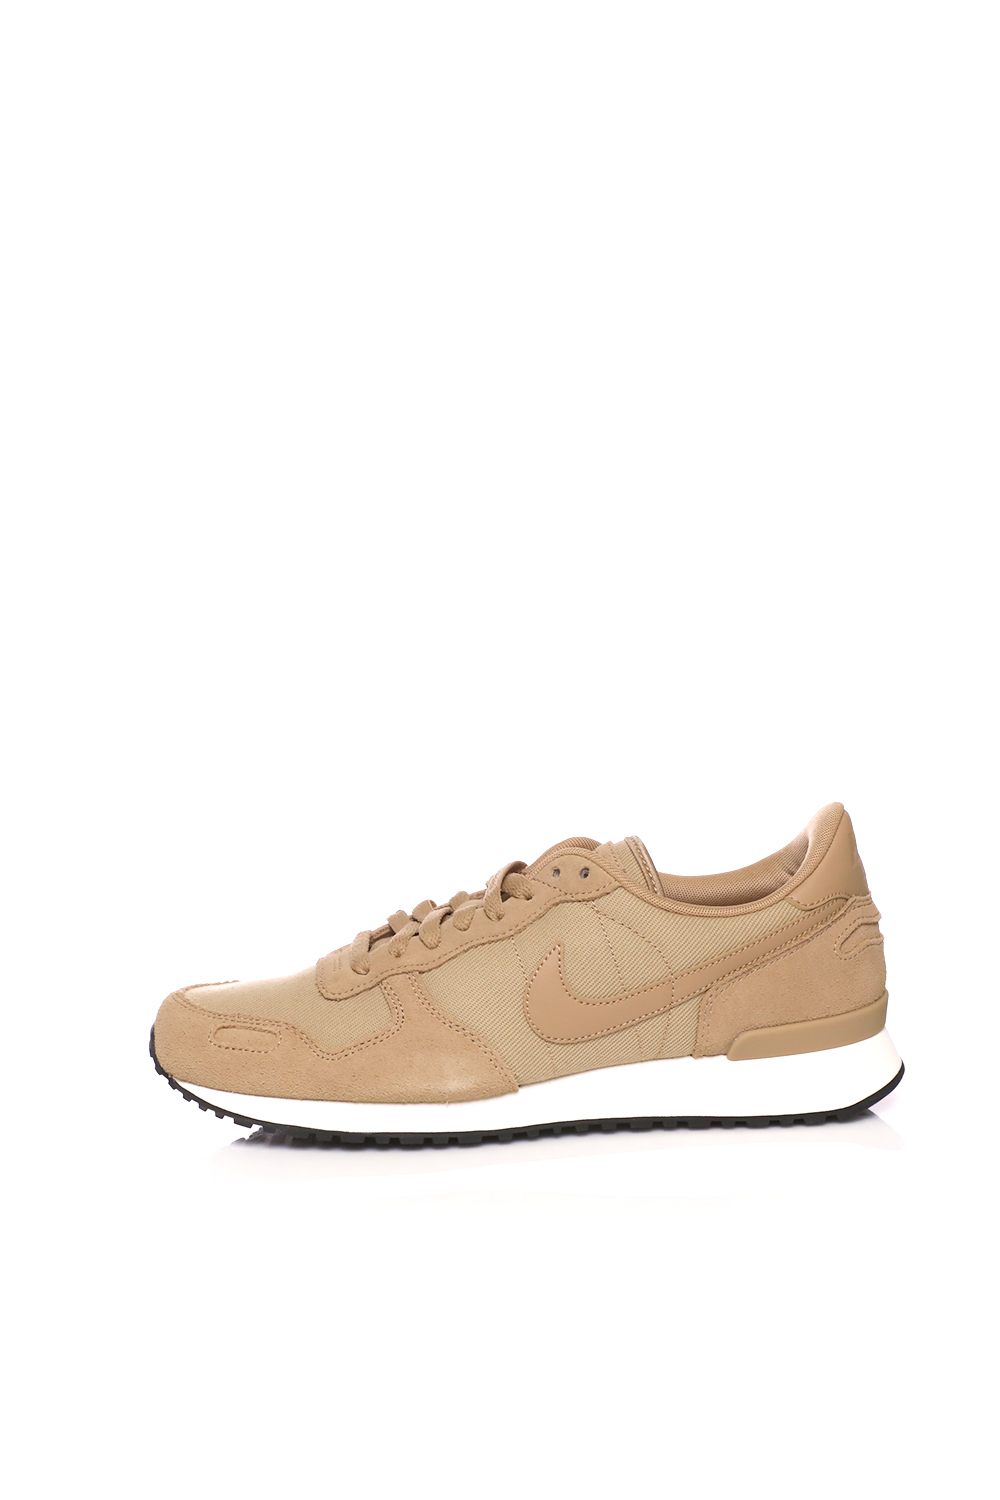 3e527fb910 -15% Collective Online NIKE – Ανδρικά παπούτσια NIKE AIR VRTX LTR μπεζ